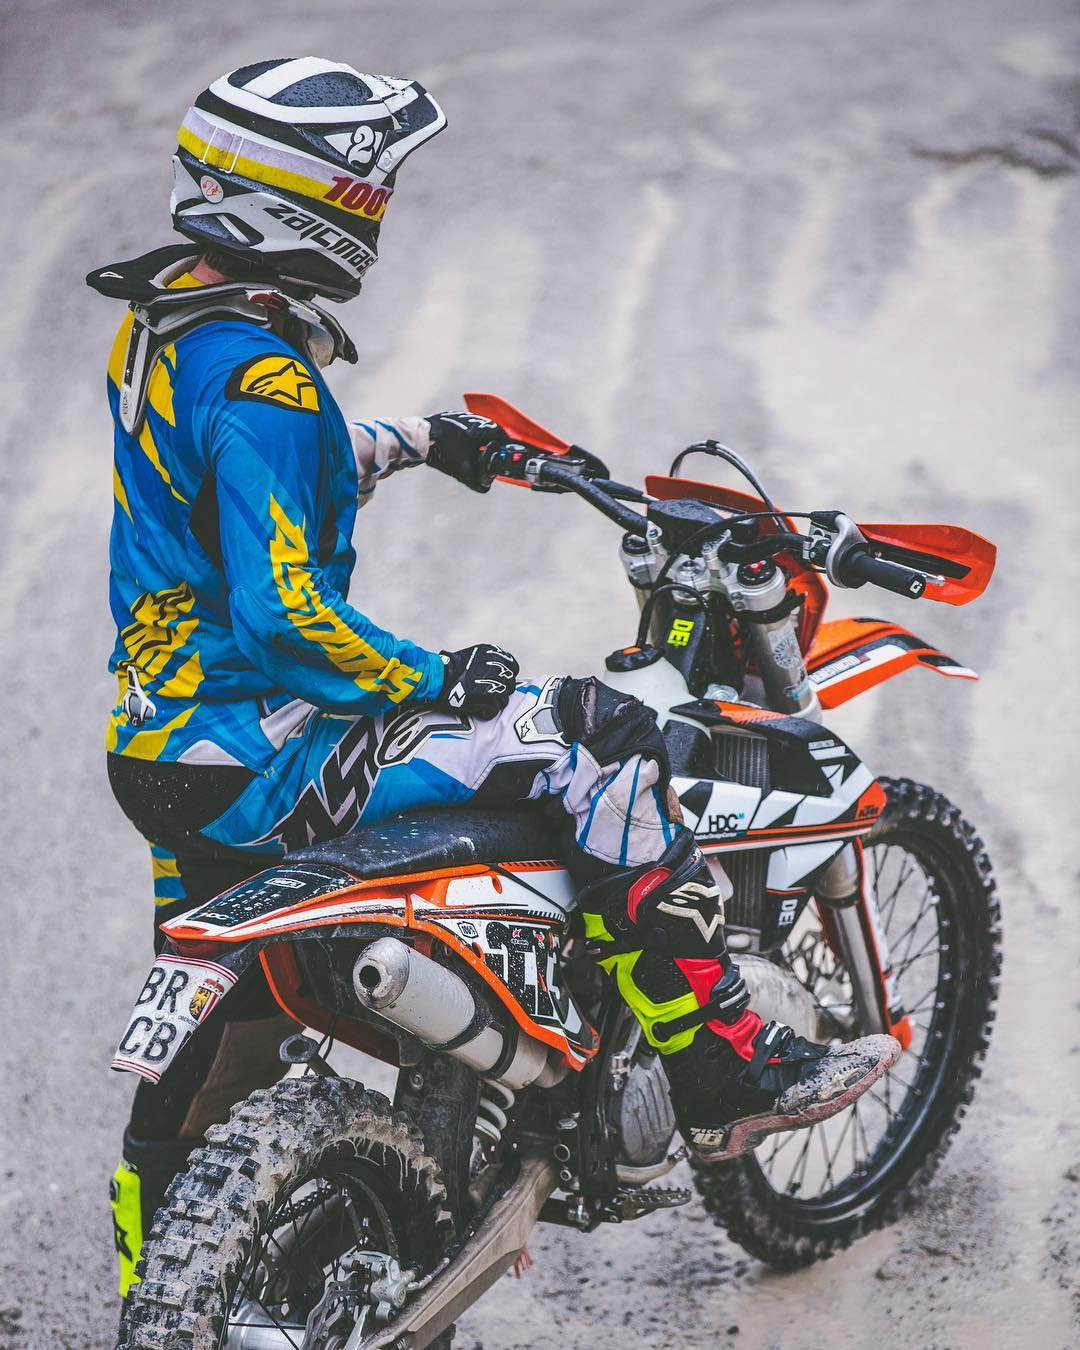 It's been a while since we did some Motos, eMTB has kind of taken over, but @tschugg23 's annual G-Mountain cup is approaching and we can't wait to dust off the cobwebs! #ktm #moto #ride100percent #enduro